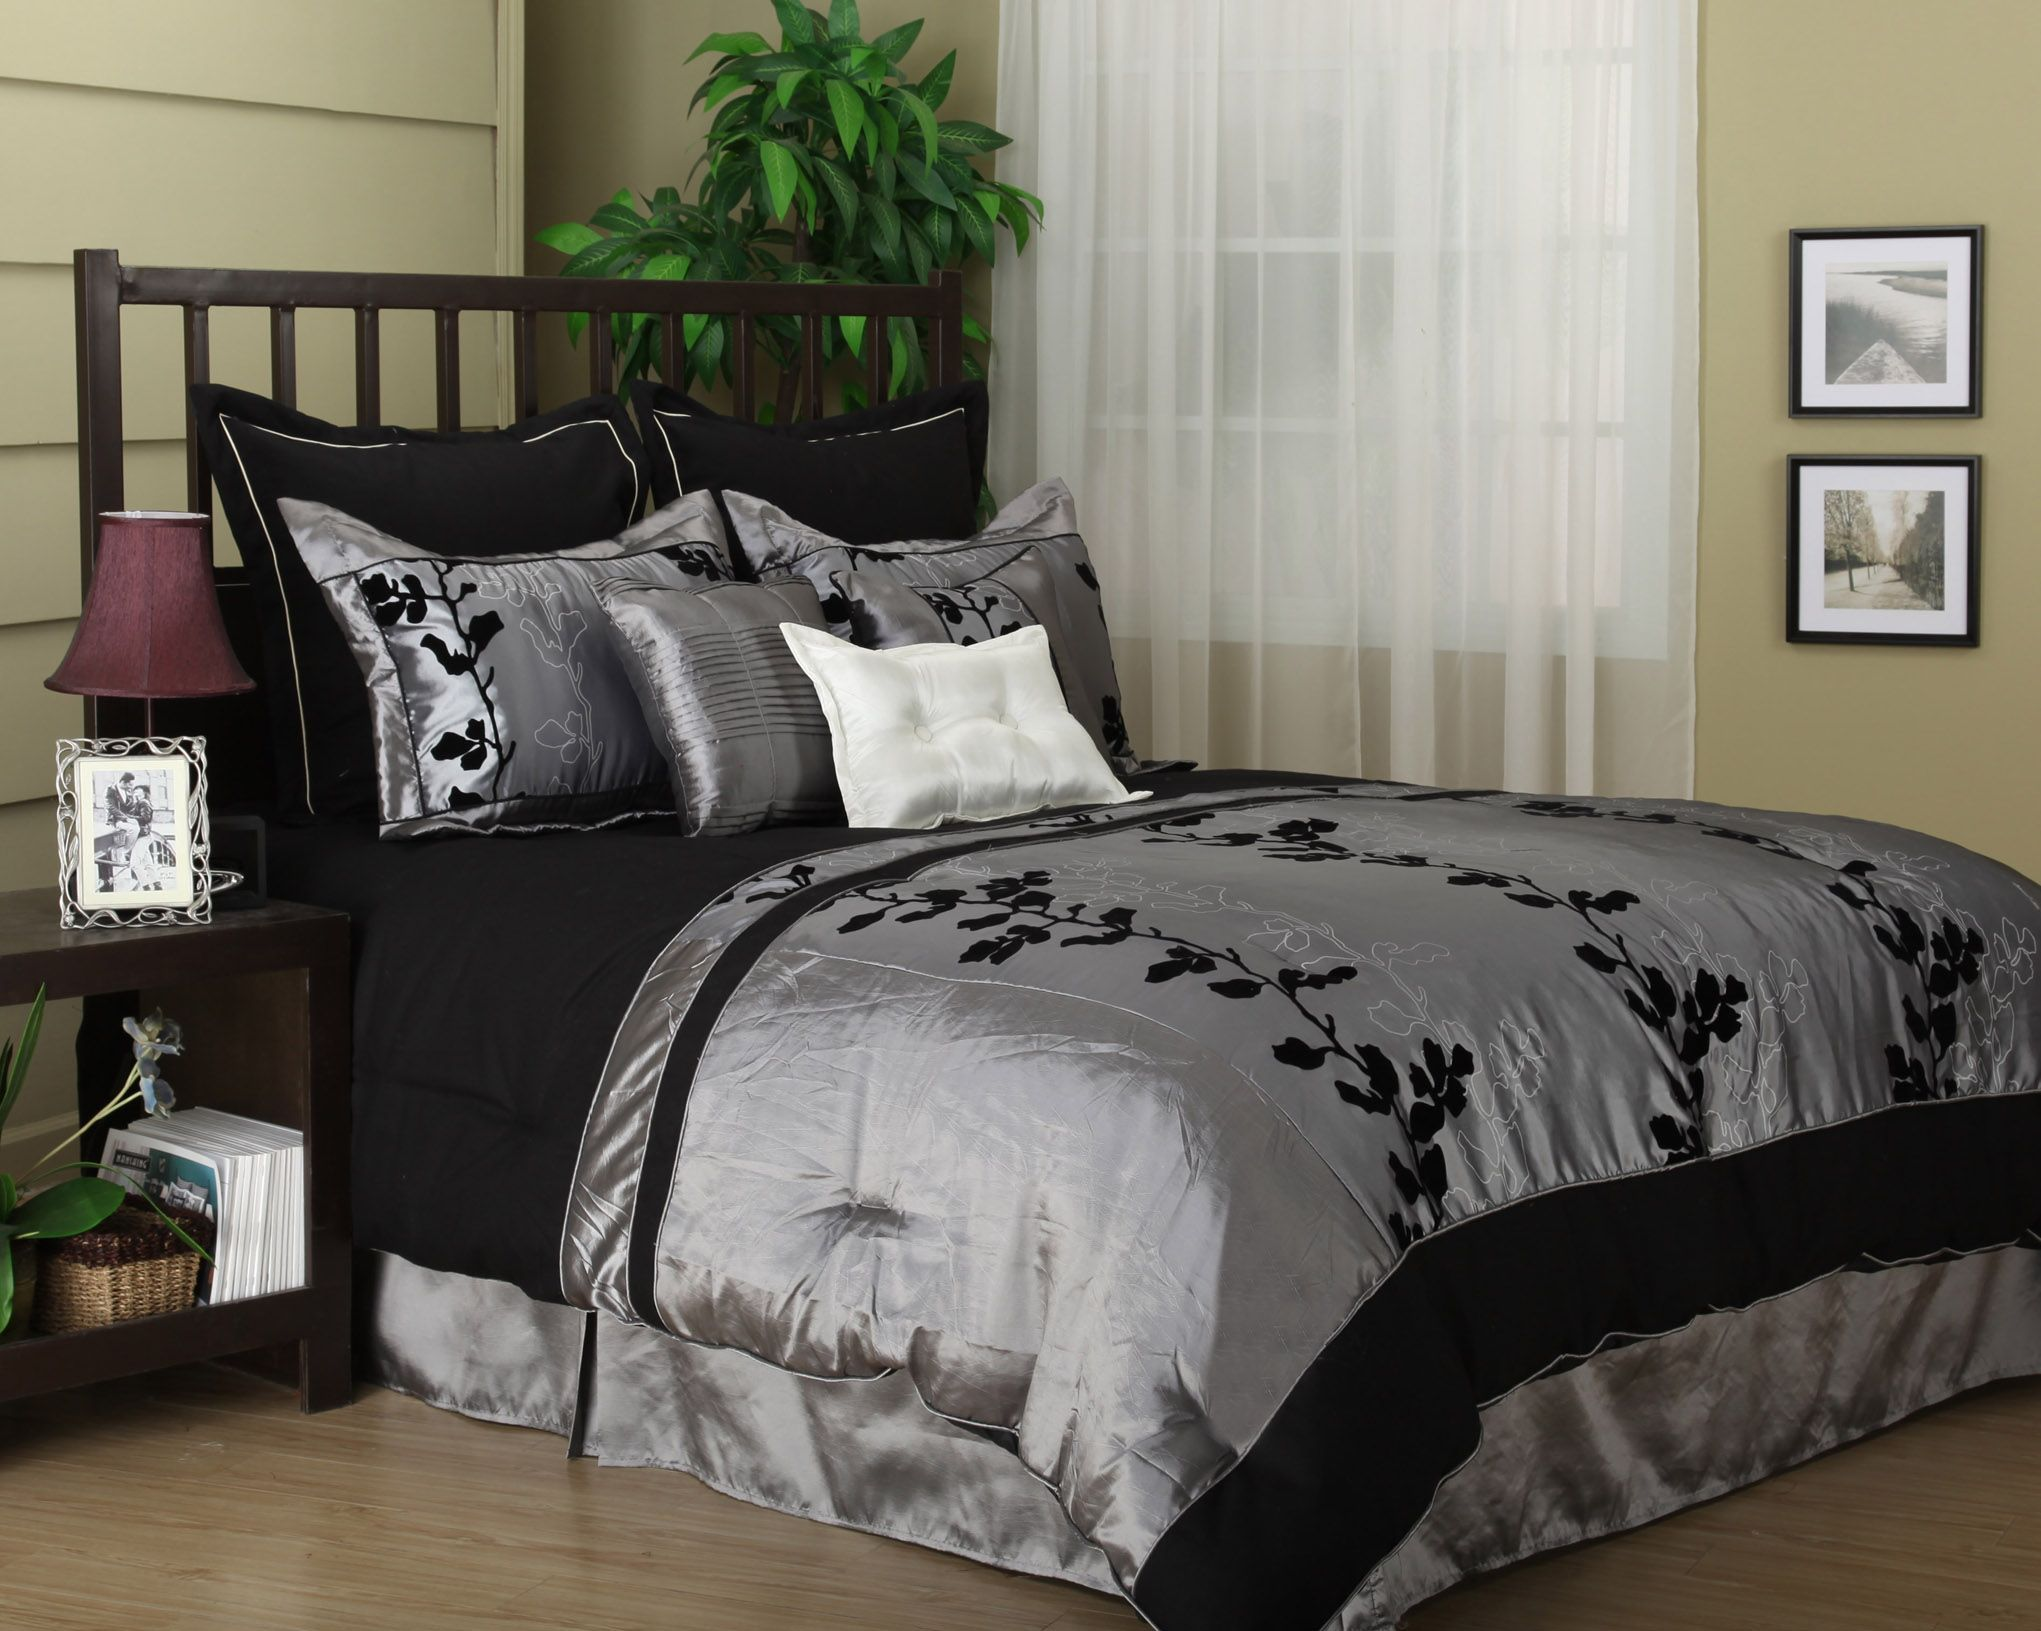 Wendy Silver Black 7 Piece Comforter Set Bed In A Bag King Queen New Black Bed Set Comforter Sets Bedding Sets